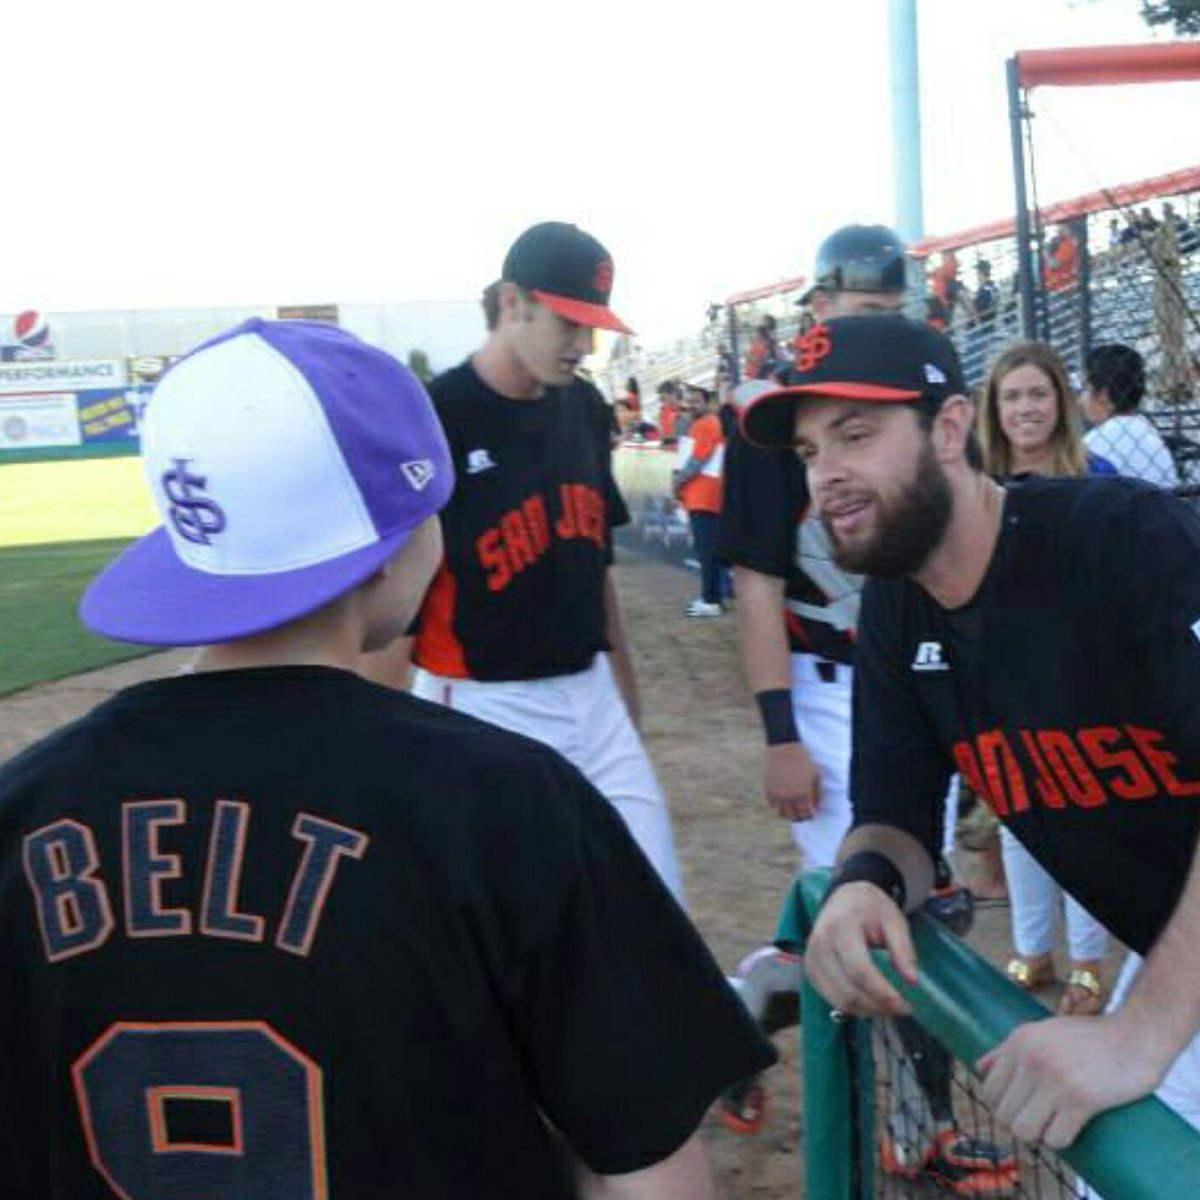 Remember to #VoteBelt to get him to this year's @MLB   All-Star game on https://t.co/u0XTIdsFYF or text N1 to 89269 https://t.co/XkoemAE1rn